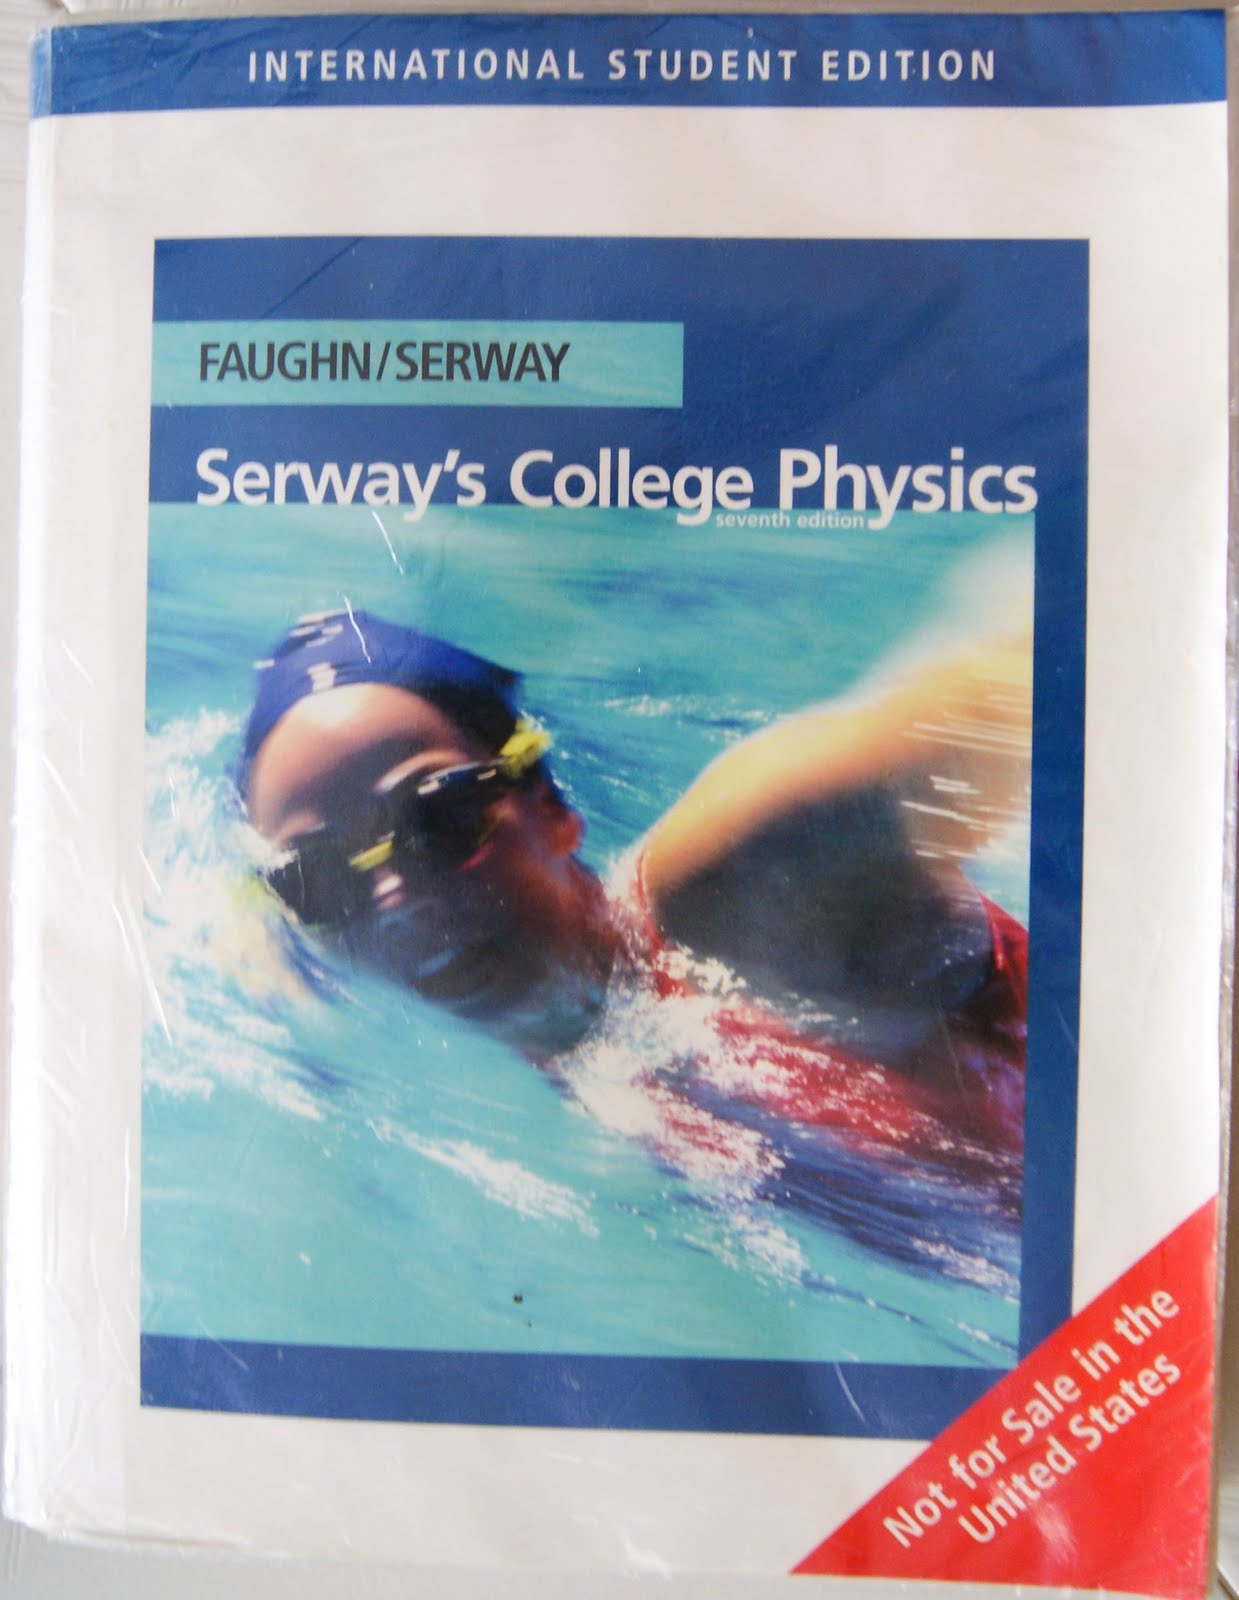 download college physics Here you can download serway vuille college physics 9th edition pdf shared files: serway vuille college physics 9th txtbkpdf from mediafirecom 5648 mb, serway vuille college physics 9th solmanpdf from mediafirecom 1378 mb, serway vuille college physics 9th solutions manualpdf from 4sharedcom 1416 mb, college physics 9th edition by.